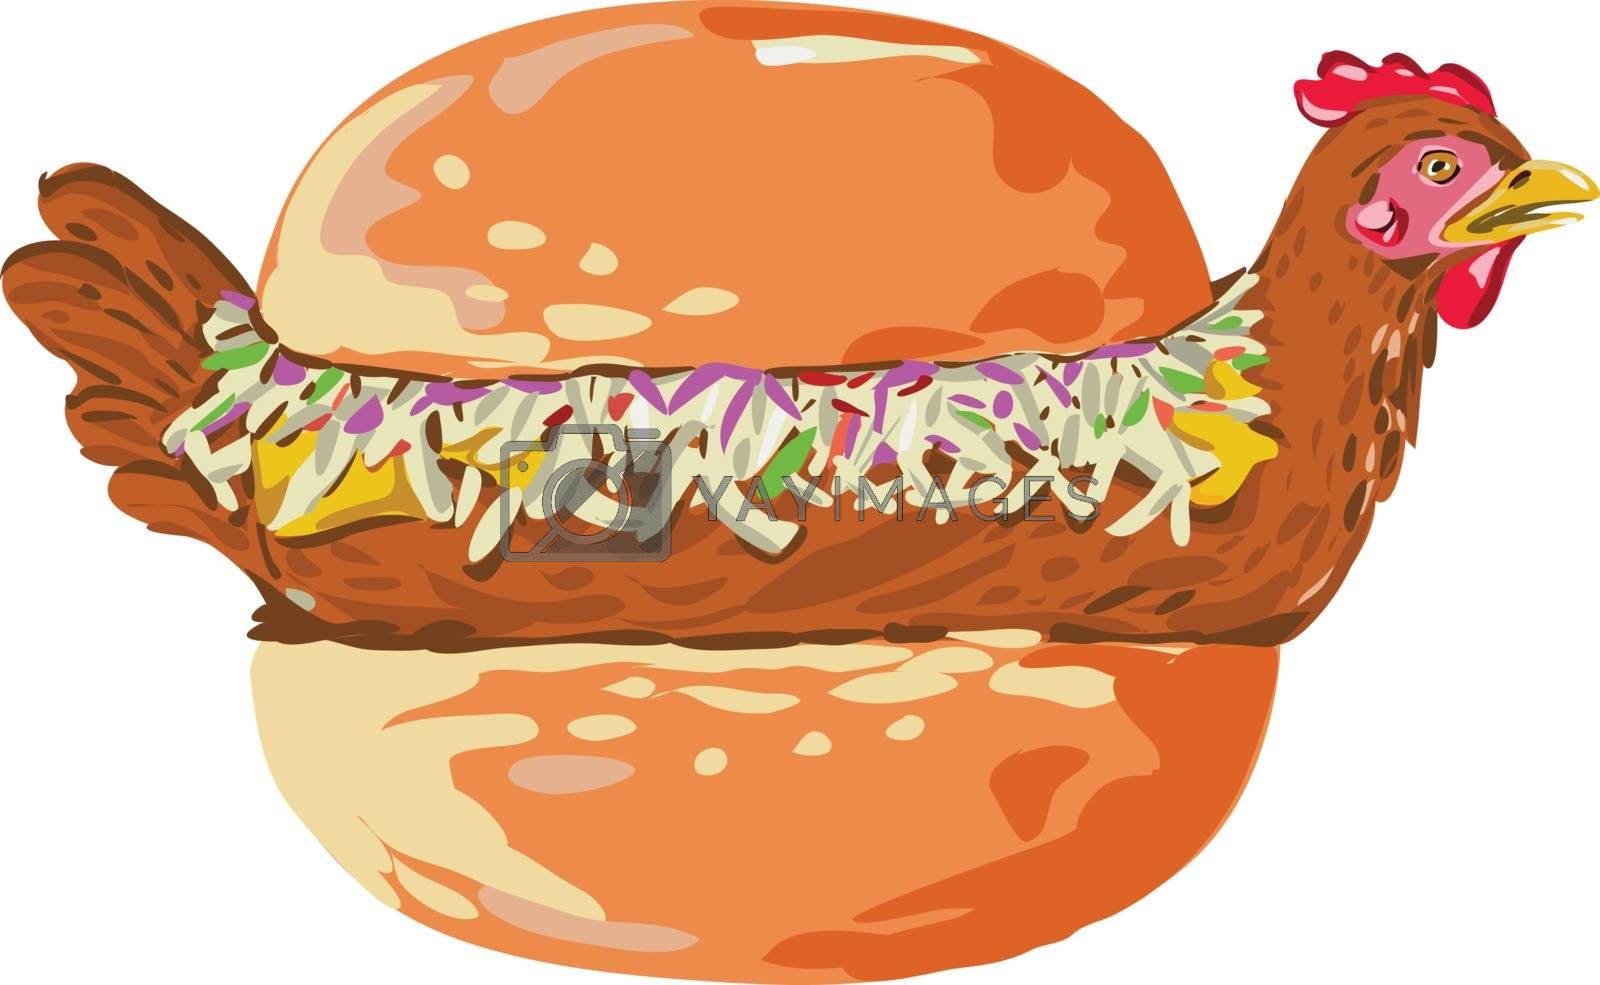 Retro style illustration of a bird or chicken in bun, bread, burger or sandwich with filling on isolated background.